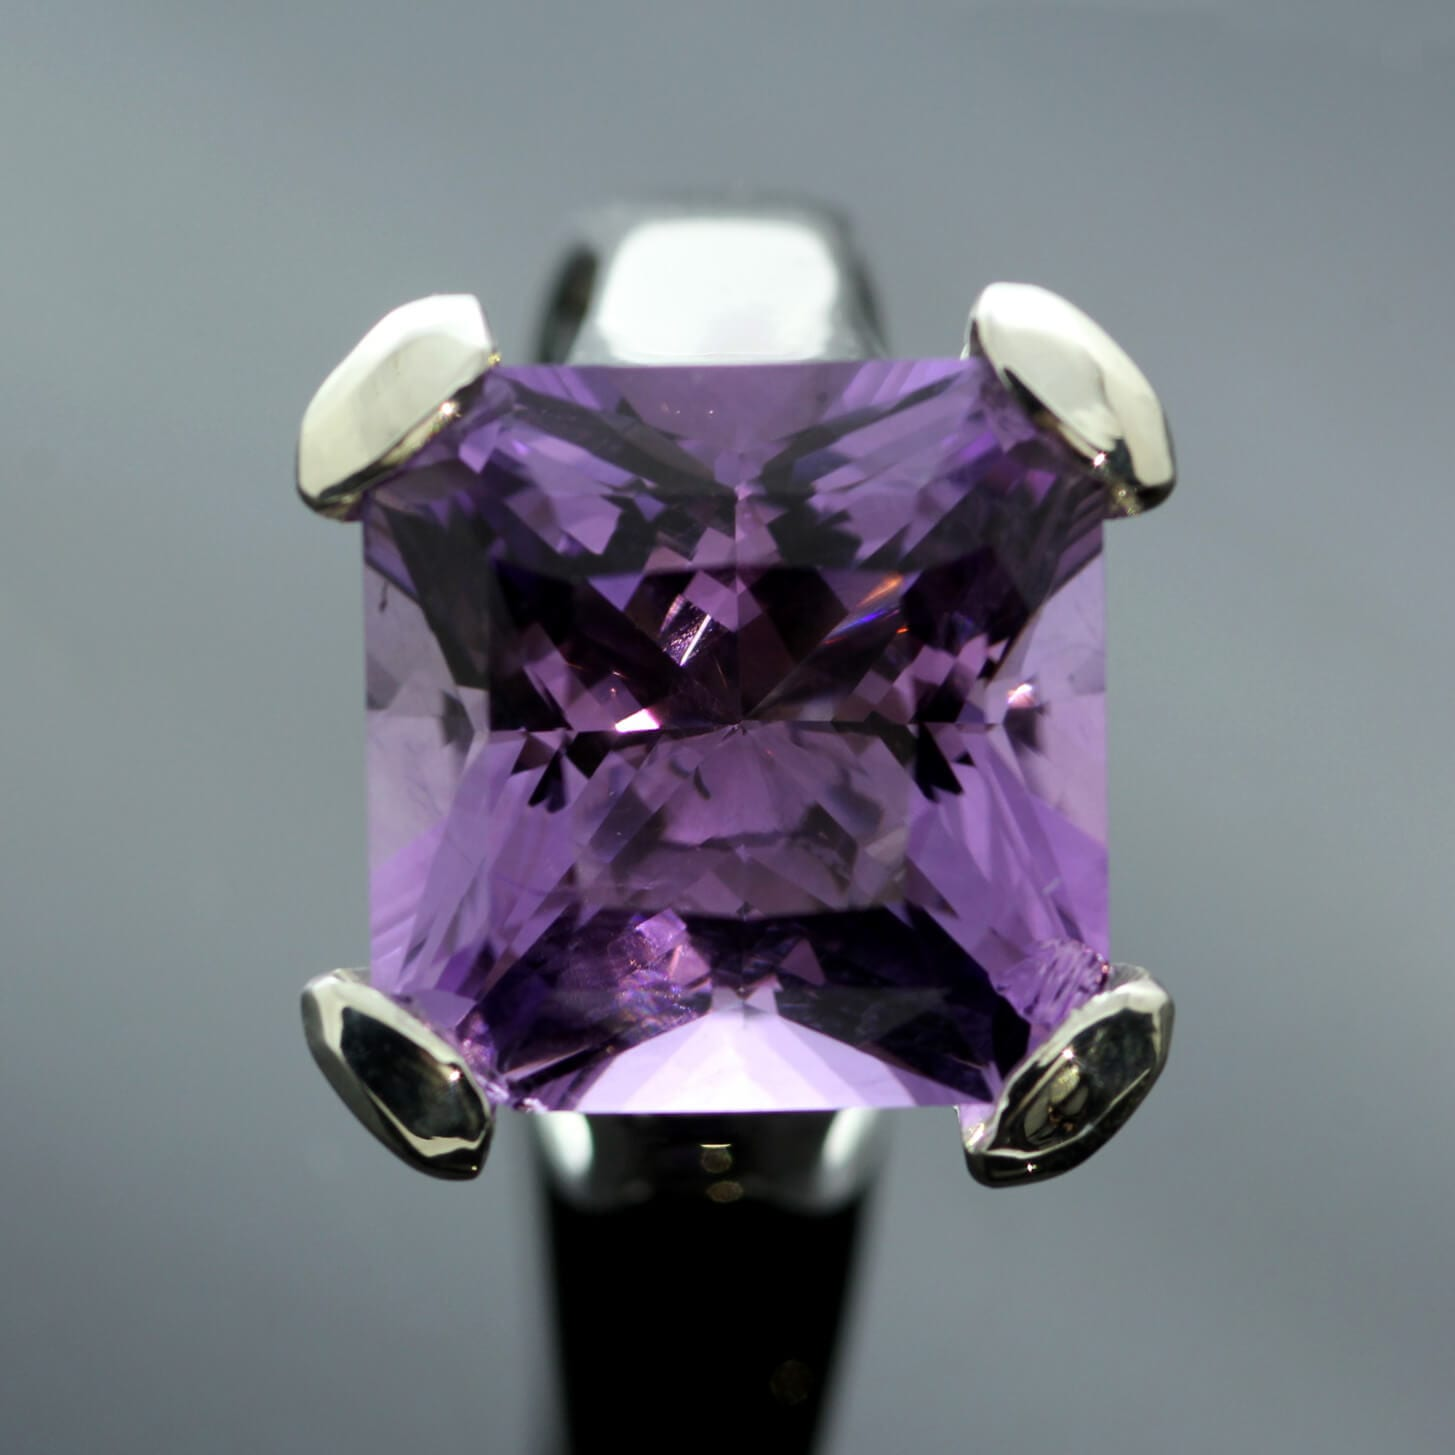 Bespoke Square cut Amethyst Sterling Silver handmade ring